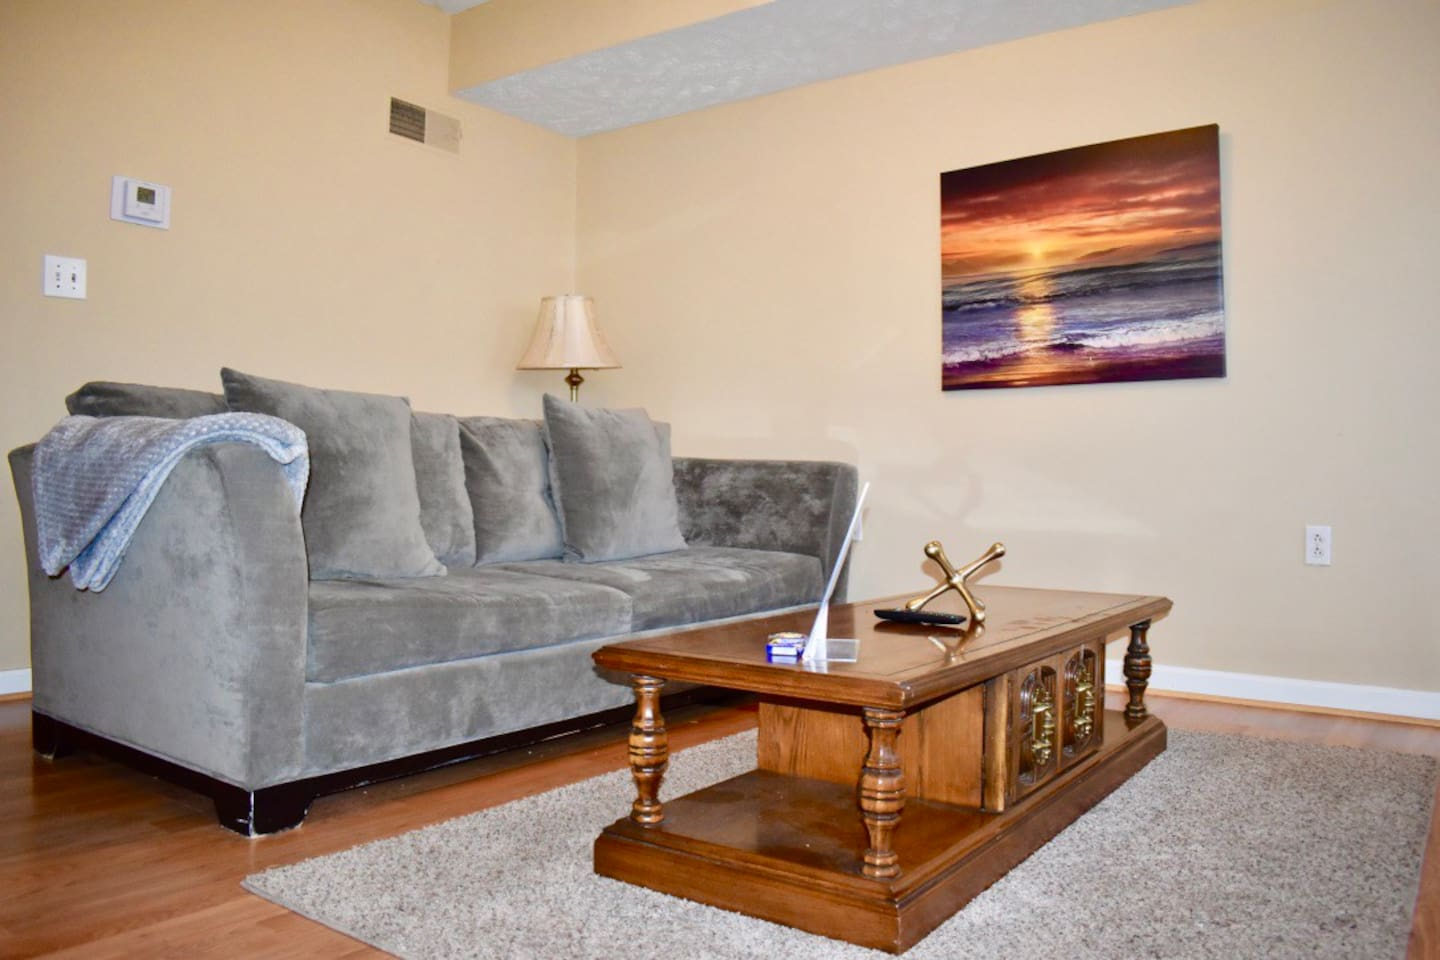 Stretch out and relax in this luxurious living room. Upgraded sofa bed for your comfort!